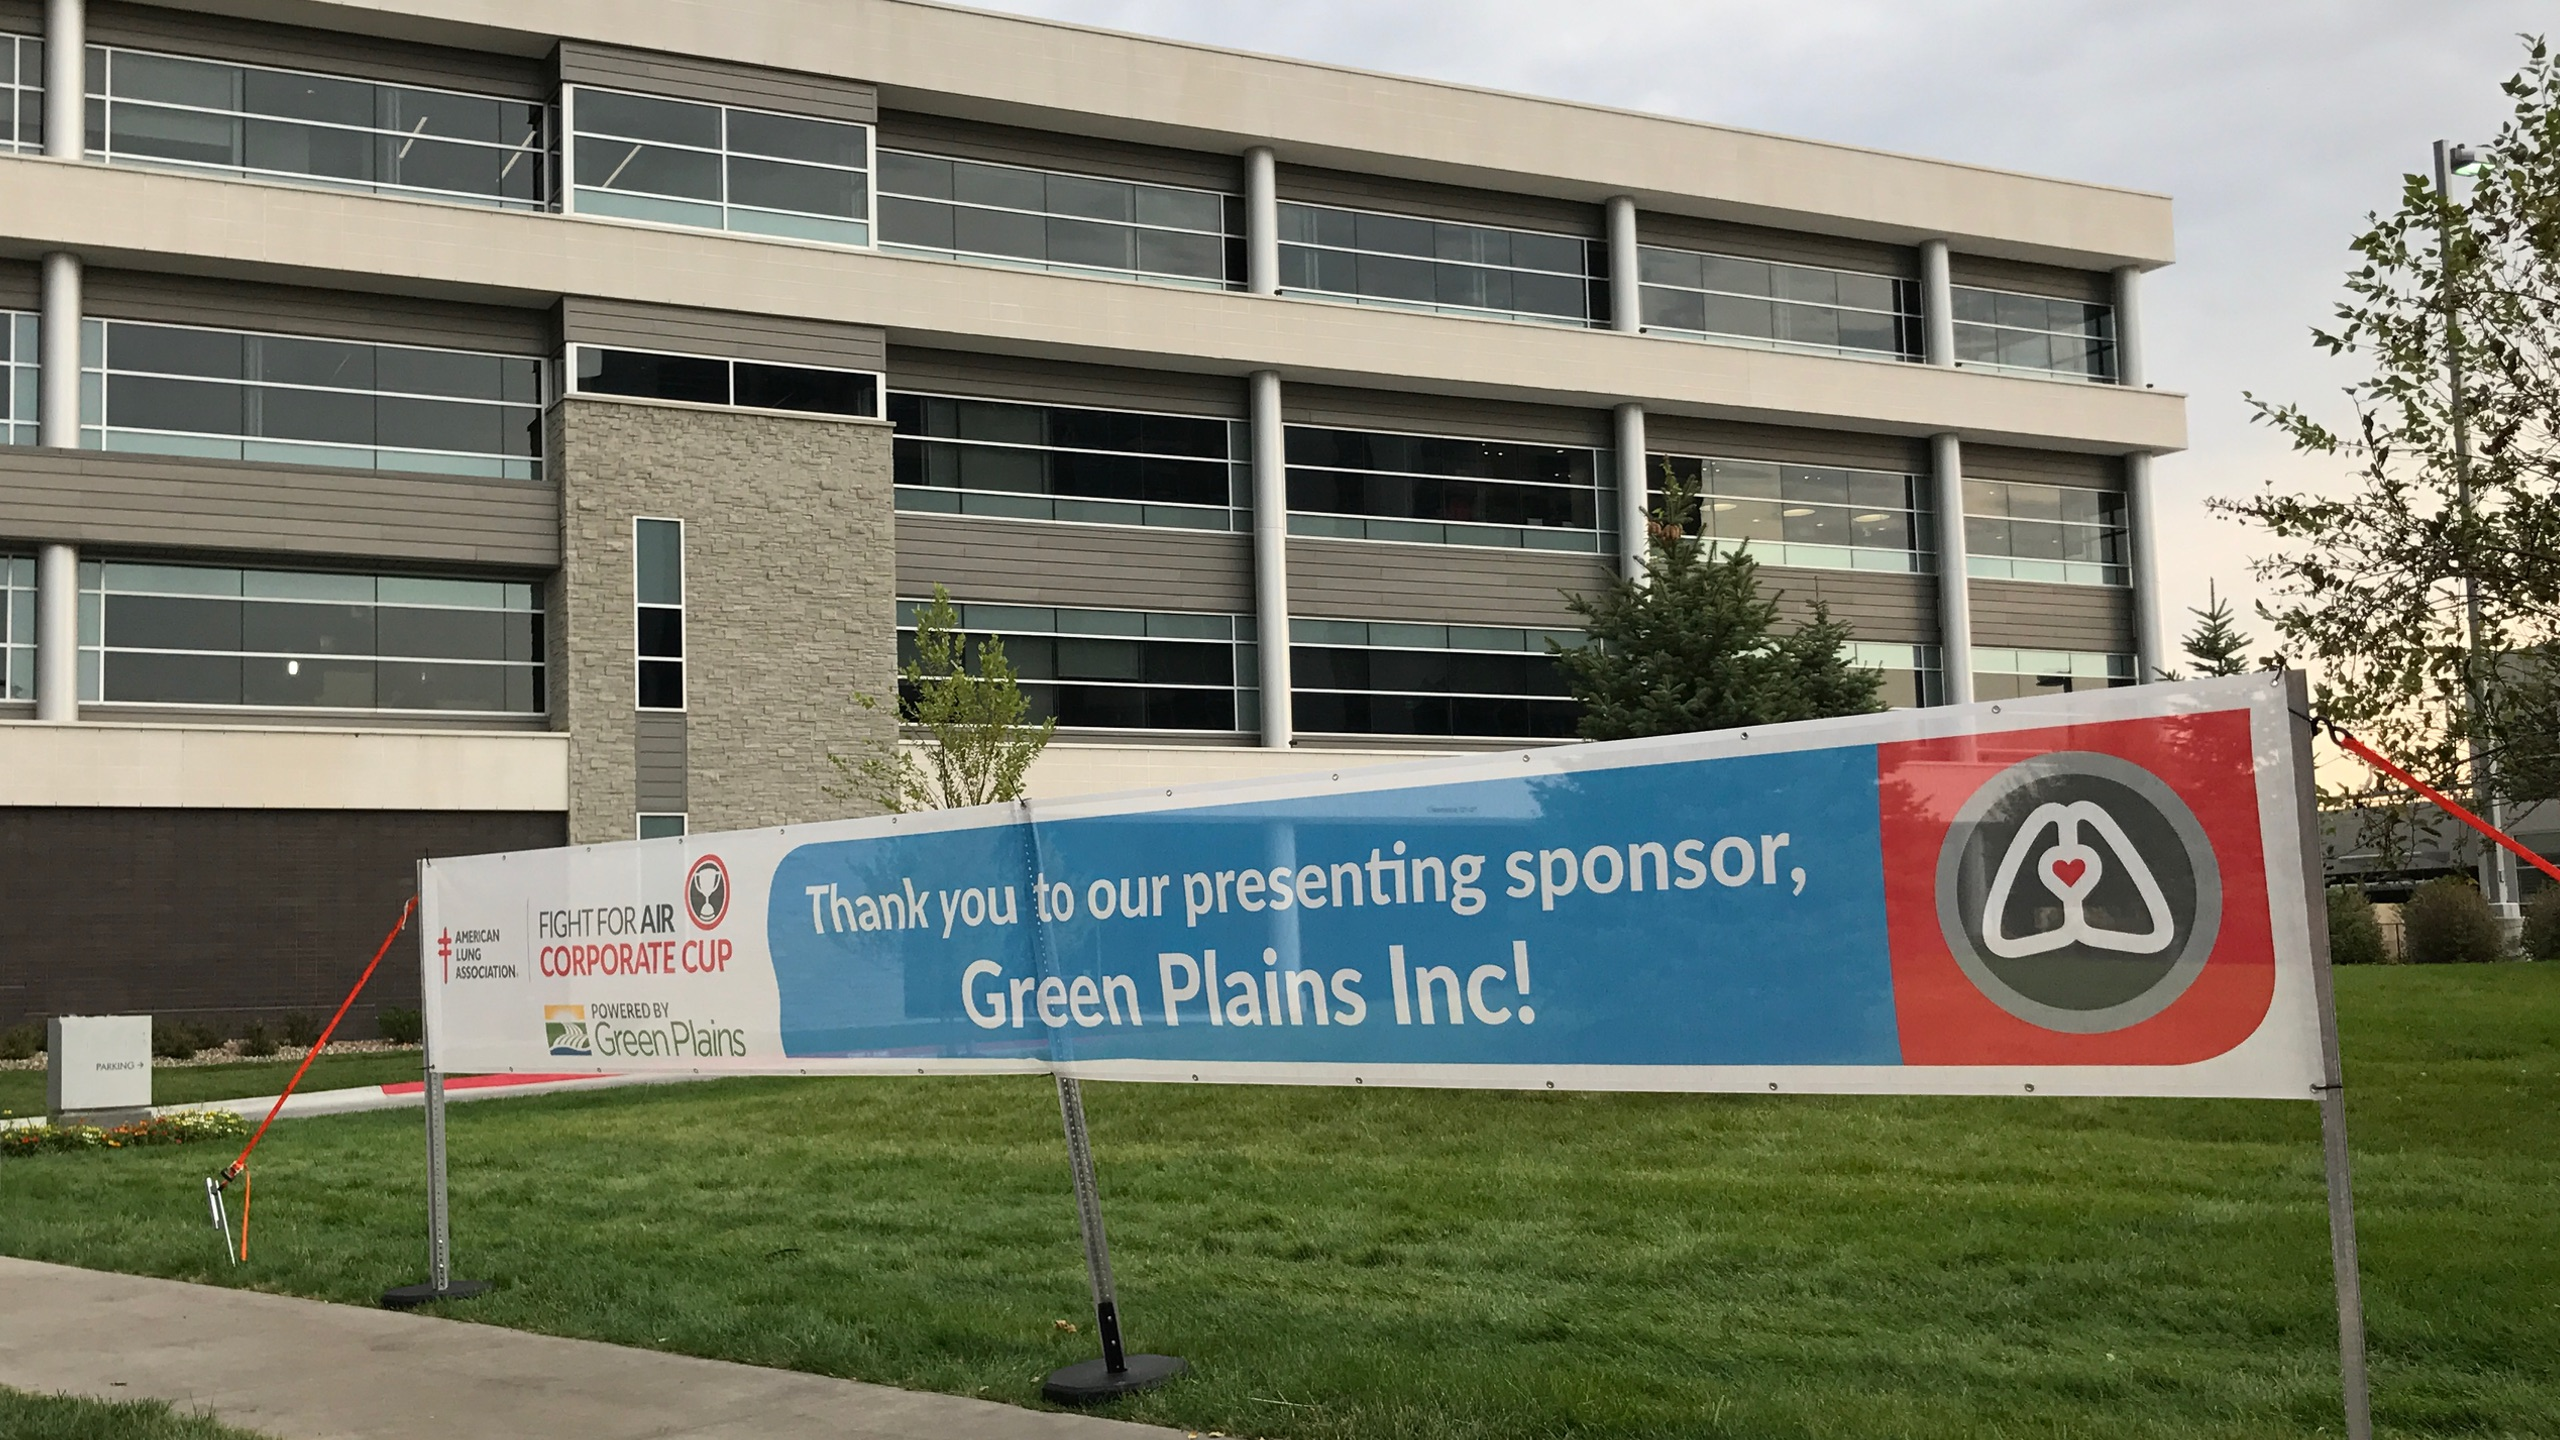 Corporate Cup Sponsorship banner outside of the Green Plains Corporate Headquarters